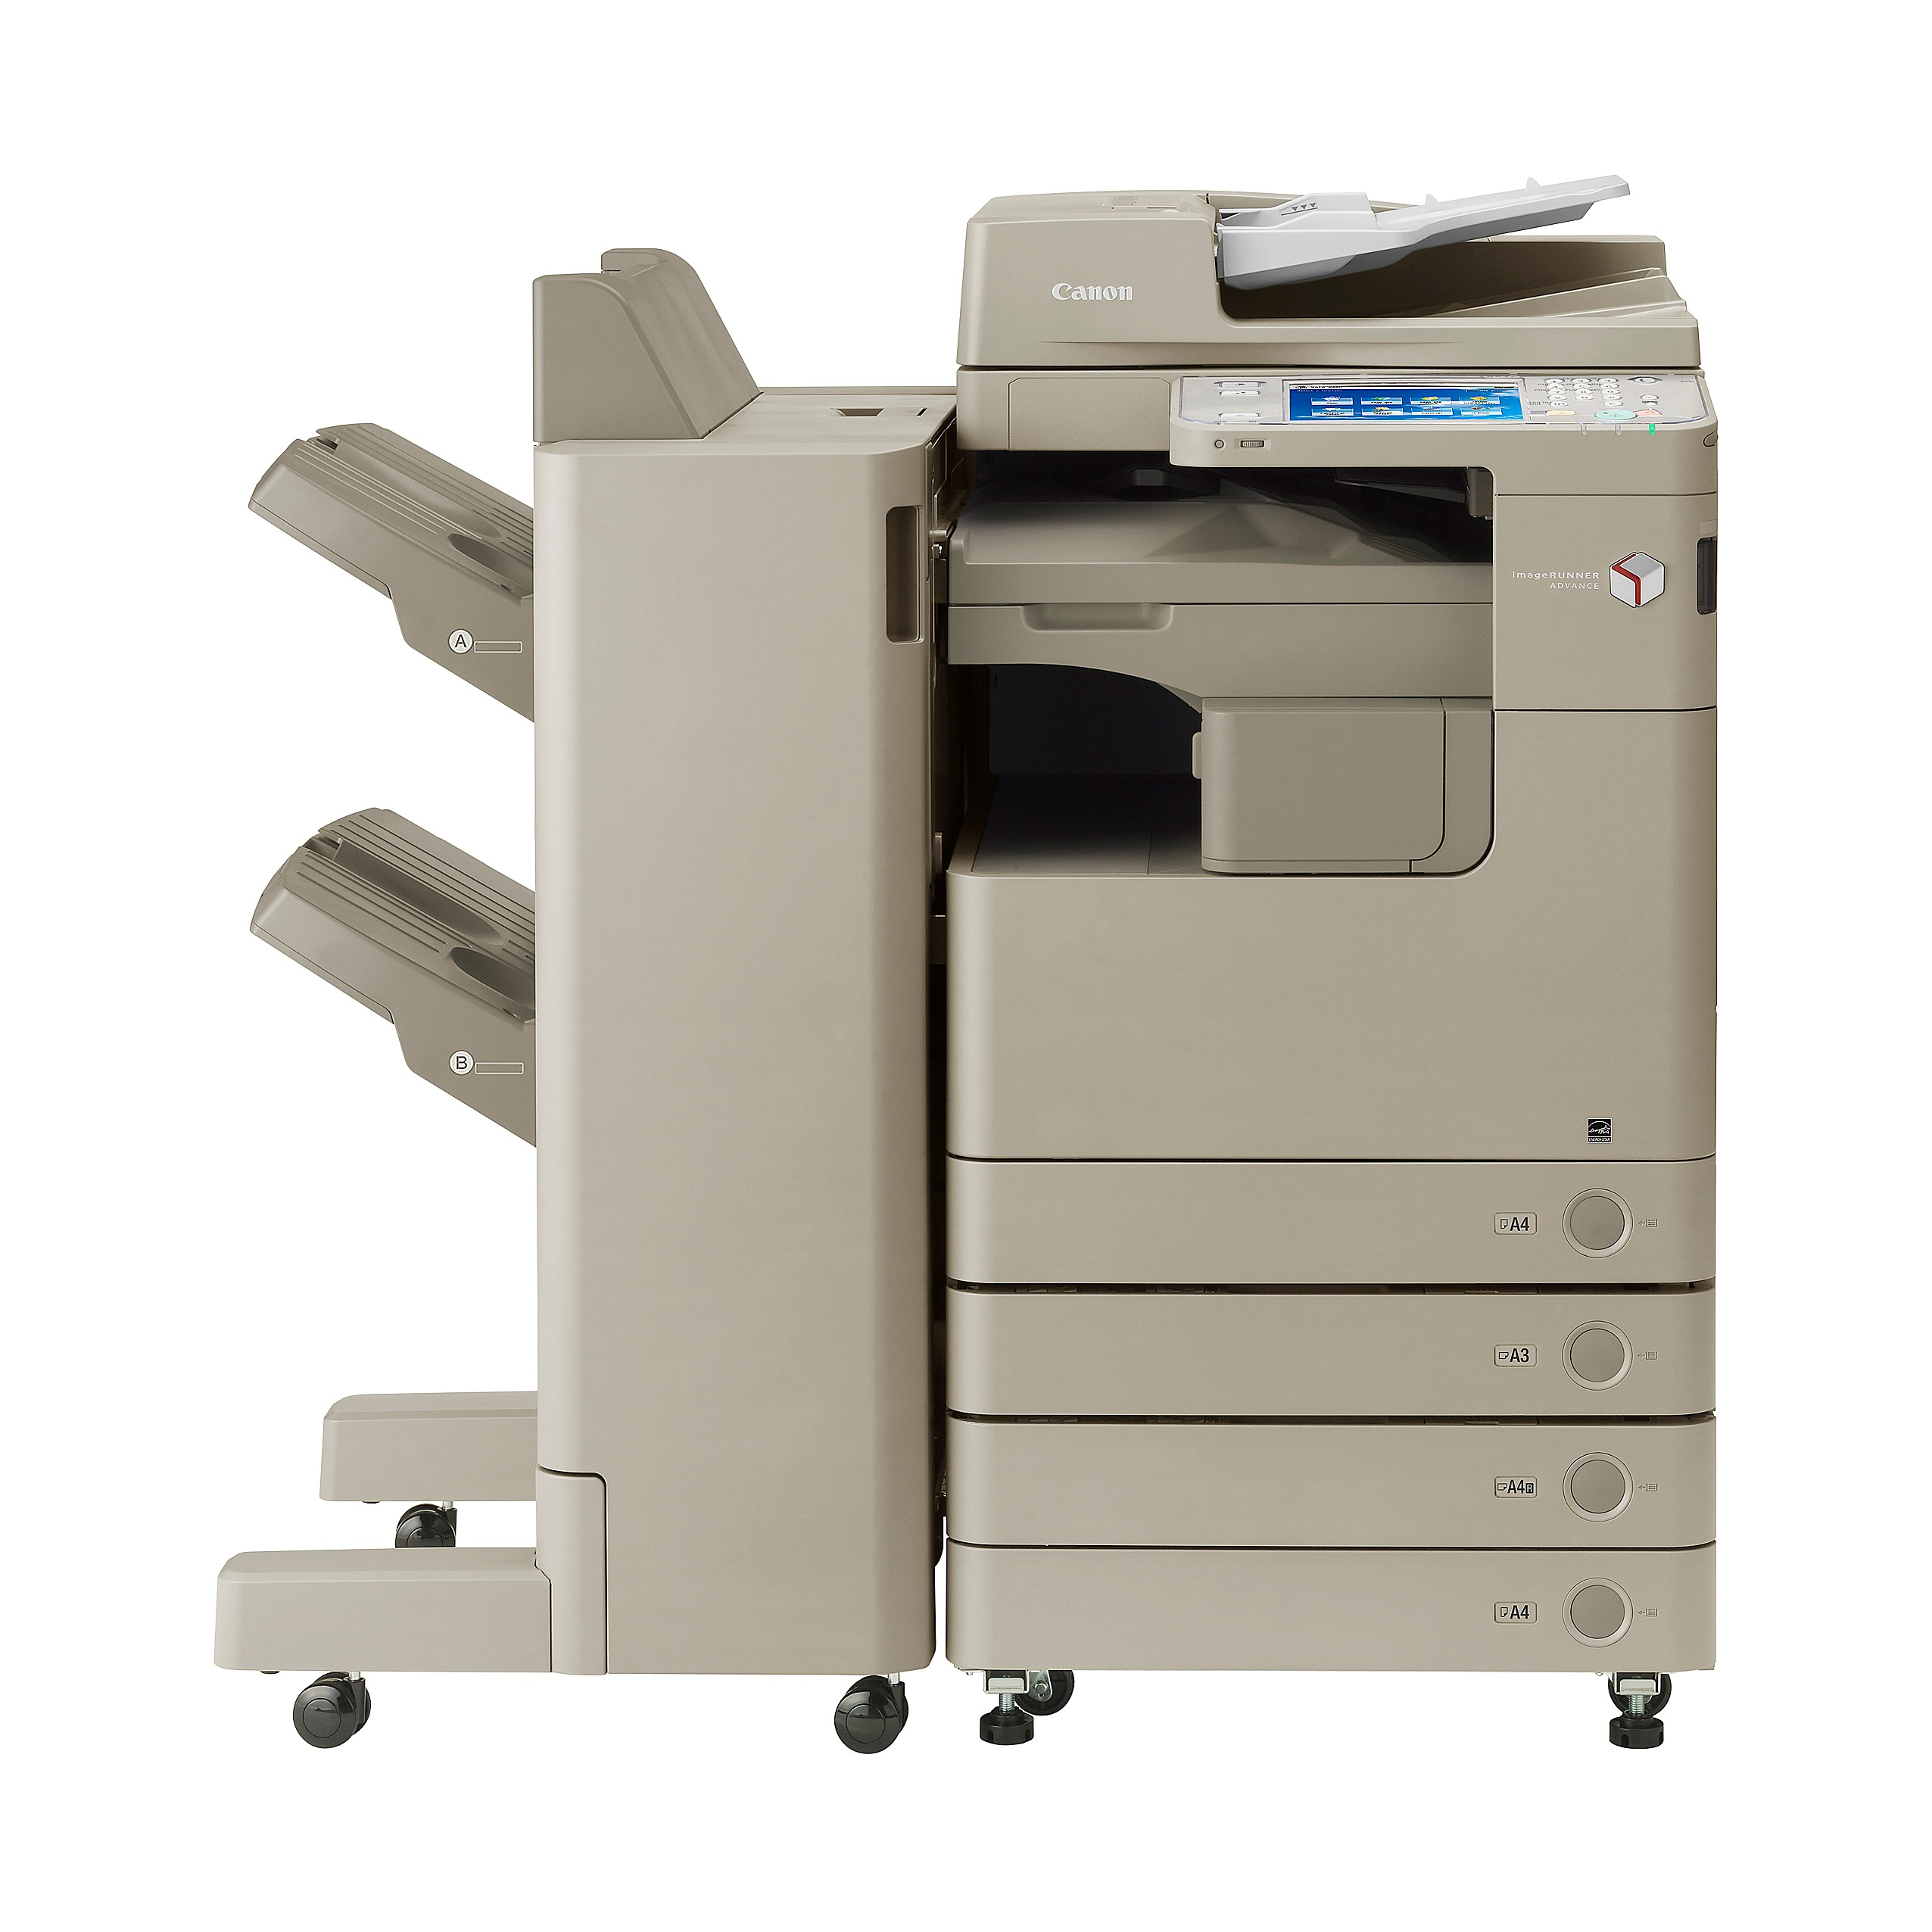 Canon ir3300-pcl6-printer-driver-free-download-for-xp.